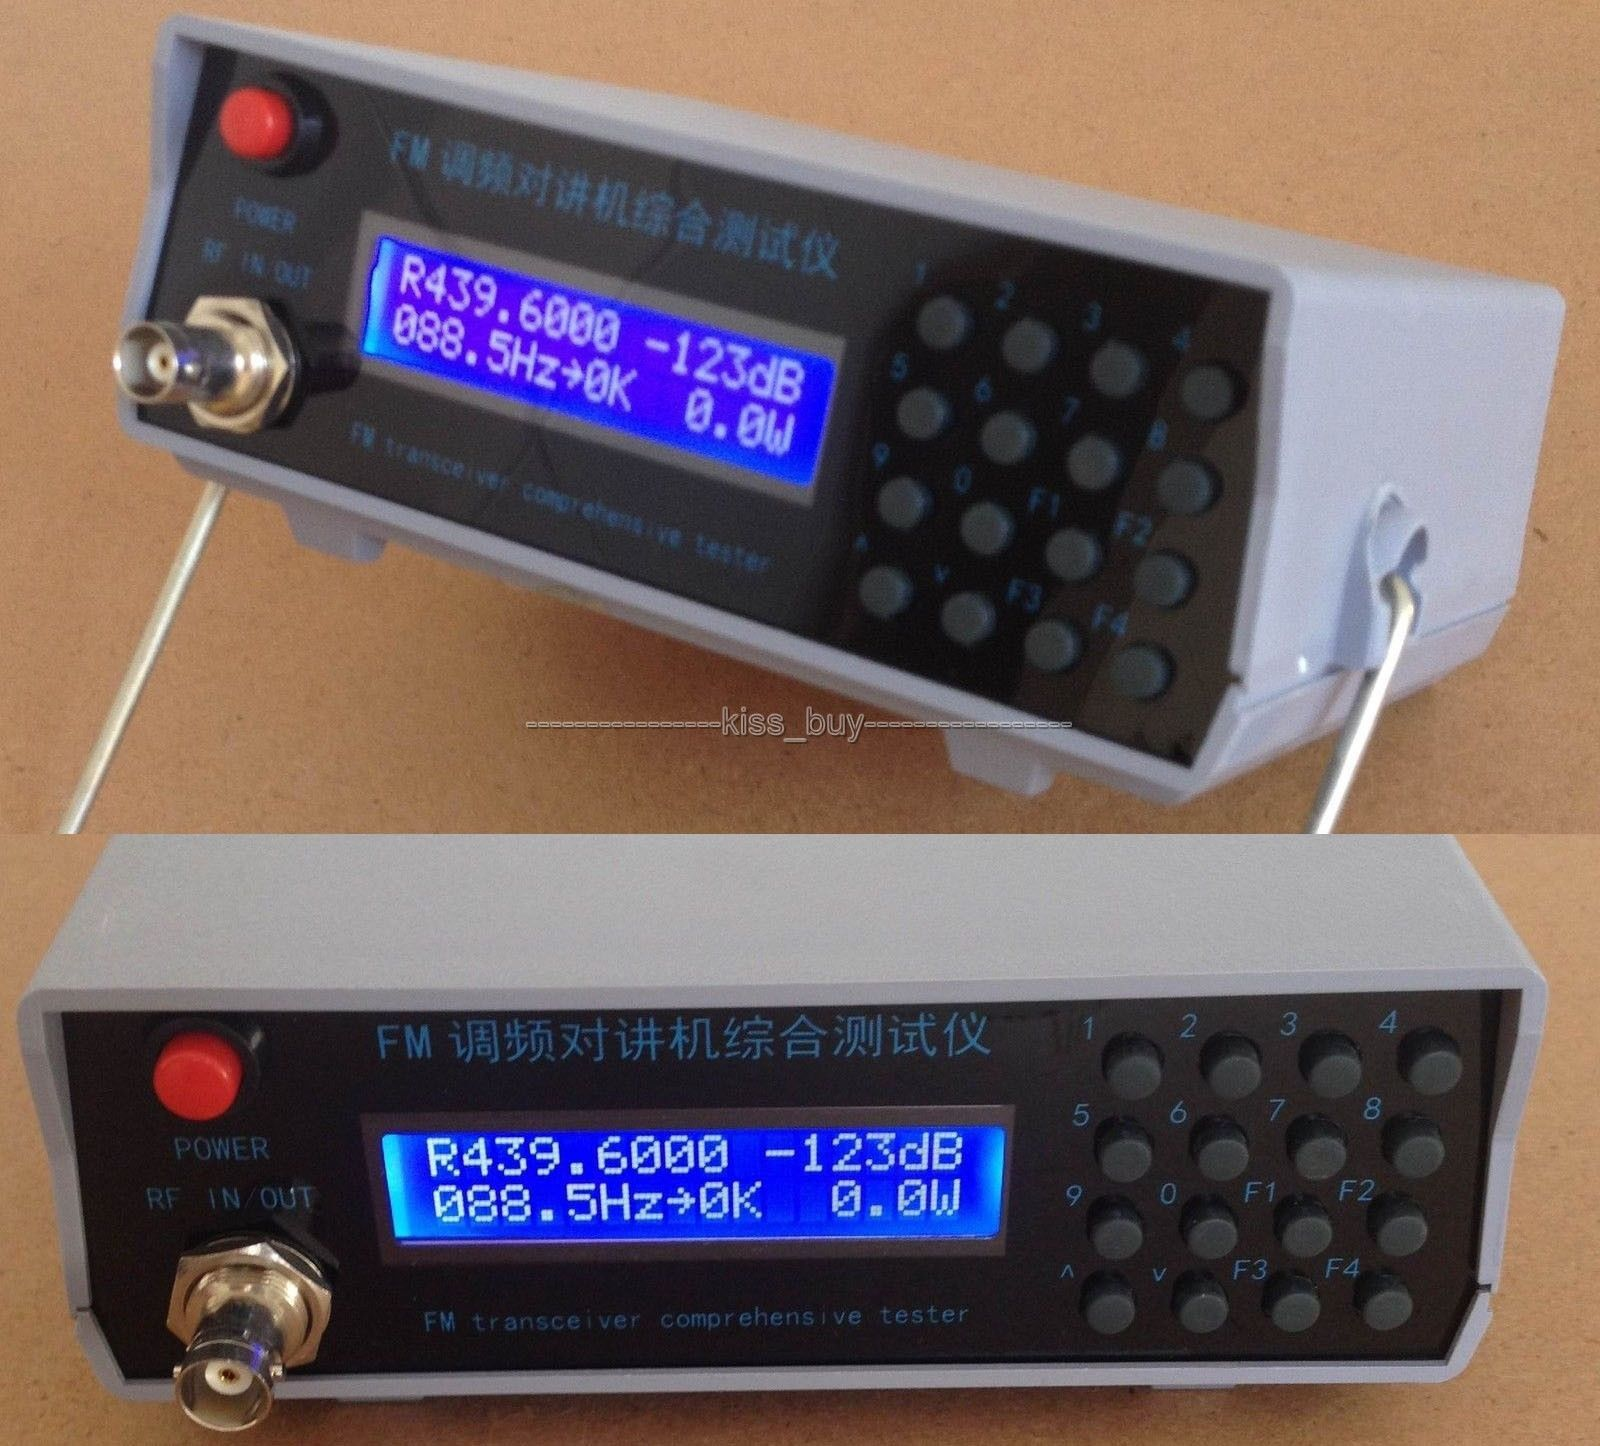 Sgp3000 Dds Signal Generator Trigger Pulse Train Output Pwm Test High Frequency Ultrasonic Circuithigh Fm Power Ctcss Meter Tester Transmit Receiver Rf